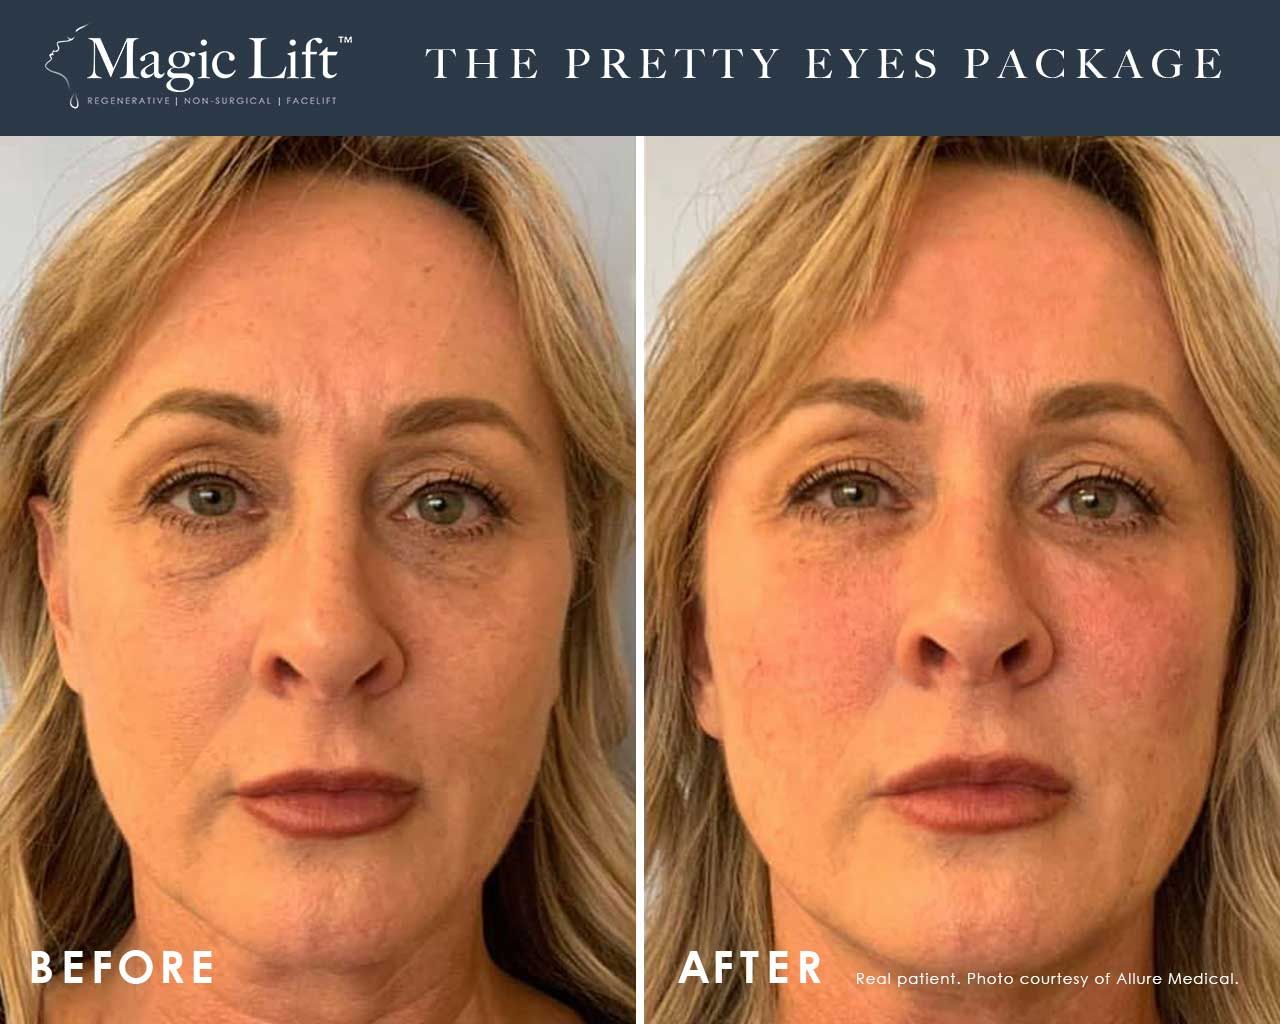 Before and After Magic Lift (Non-Surgical Face Lift) treatment #2